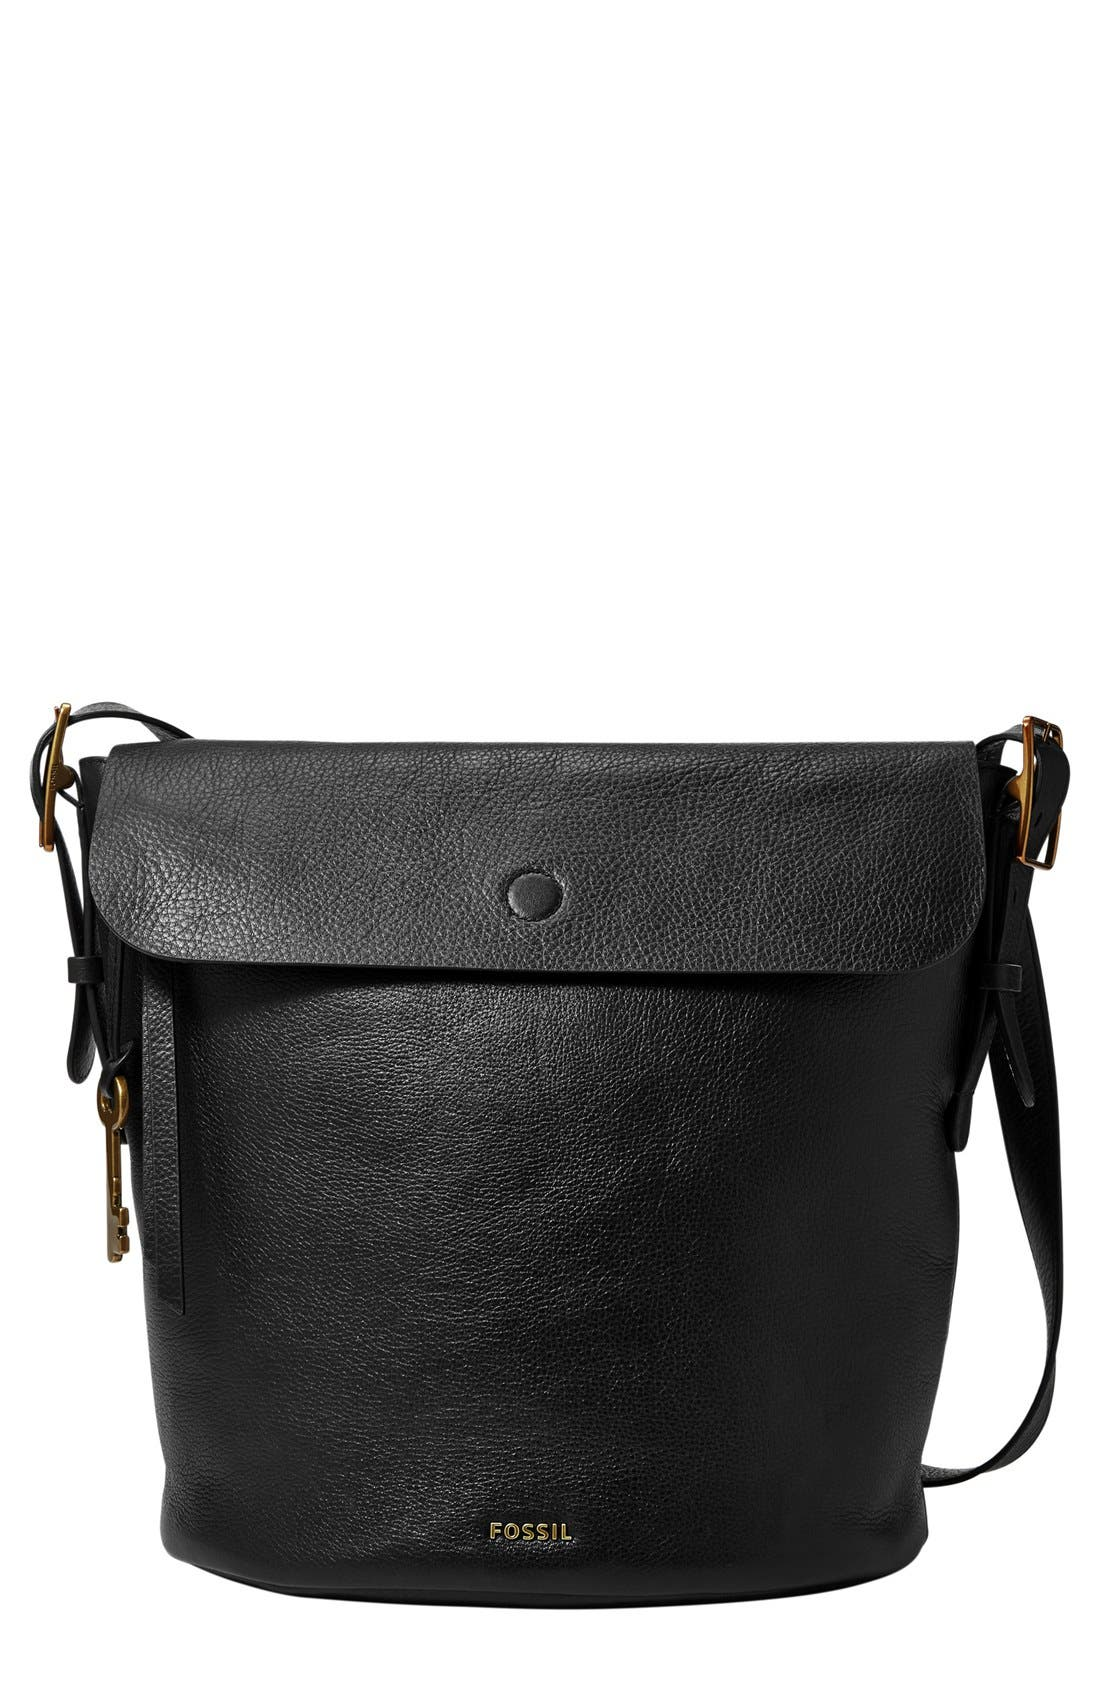 FOSSIL 'Haven' Leather Bucket Bag, Main, color, 001